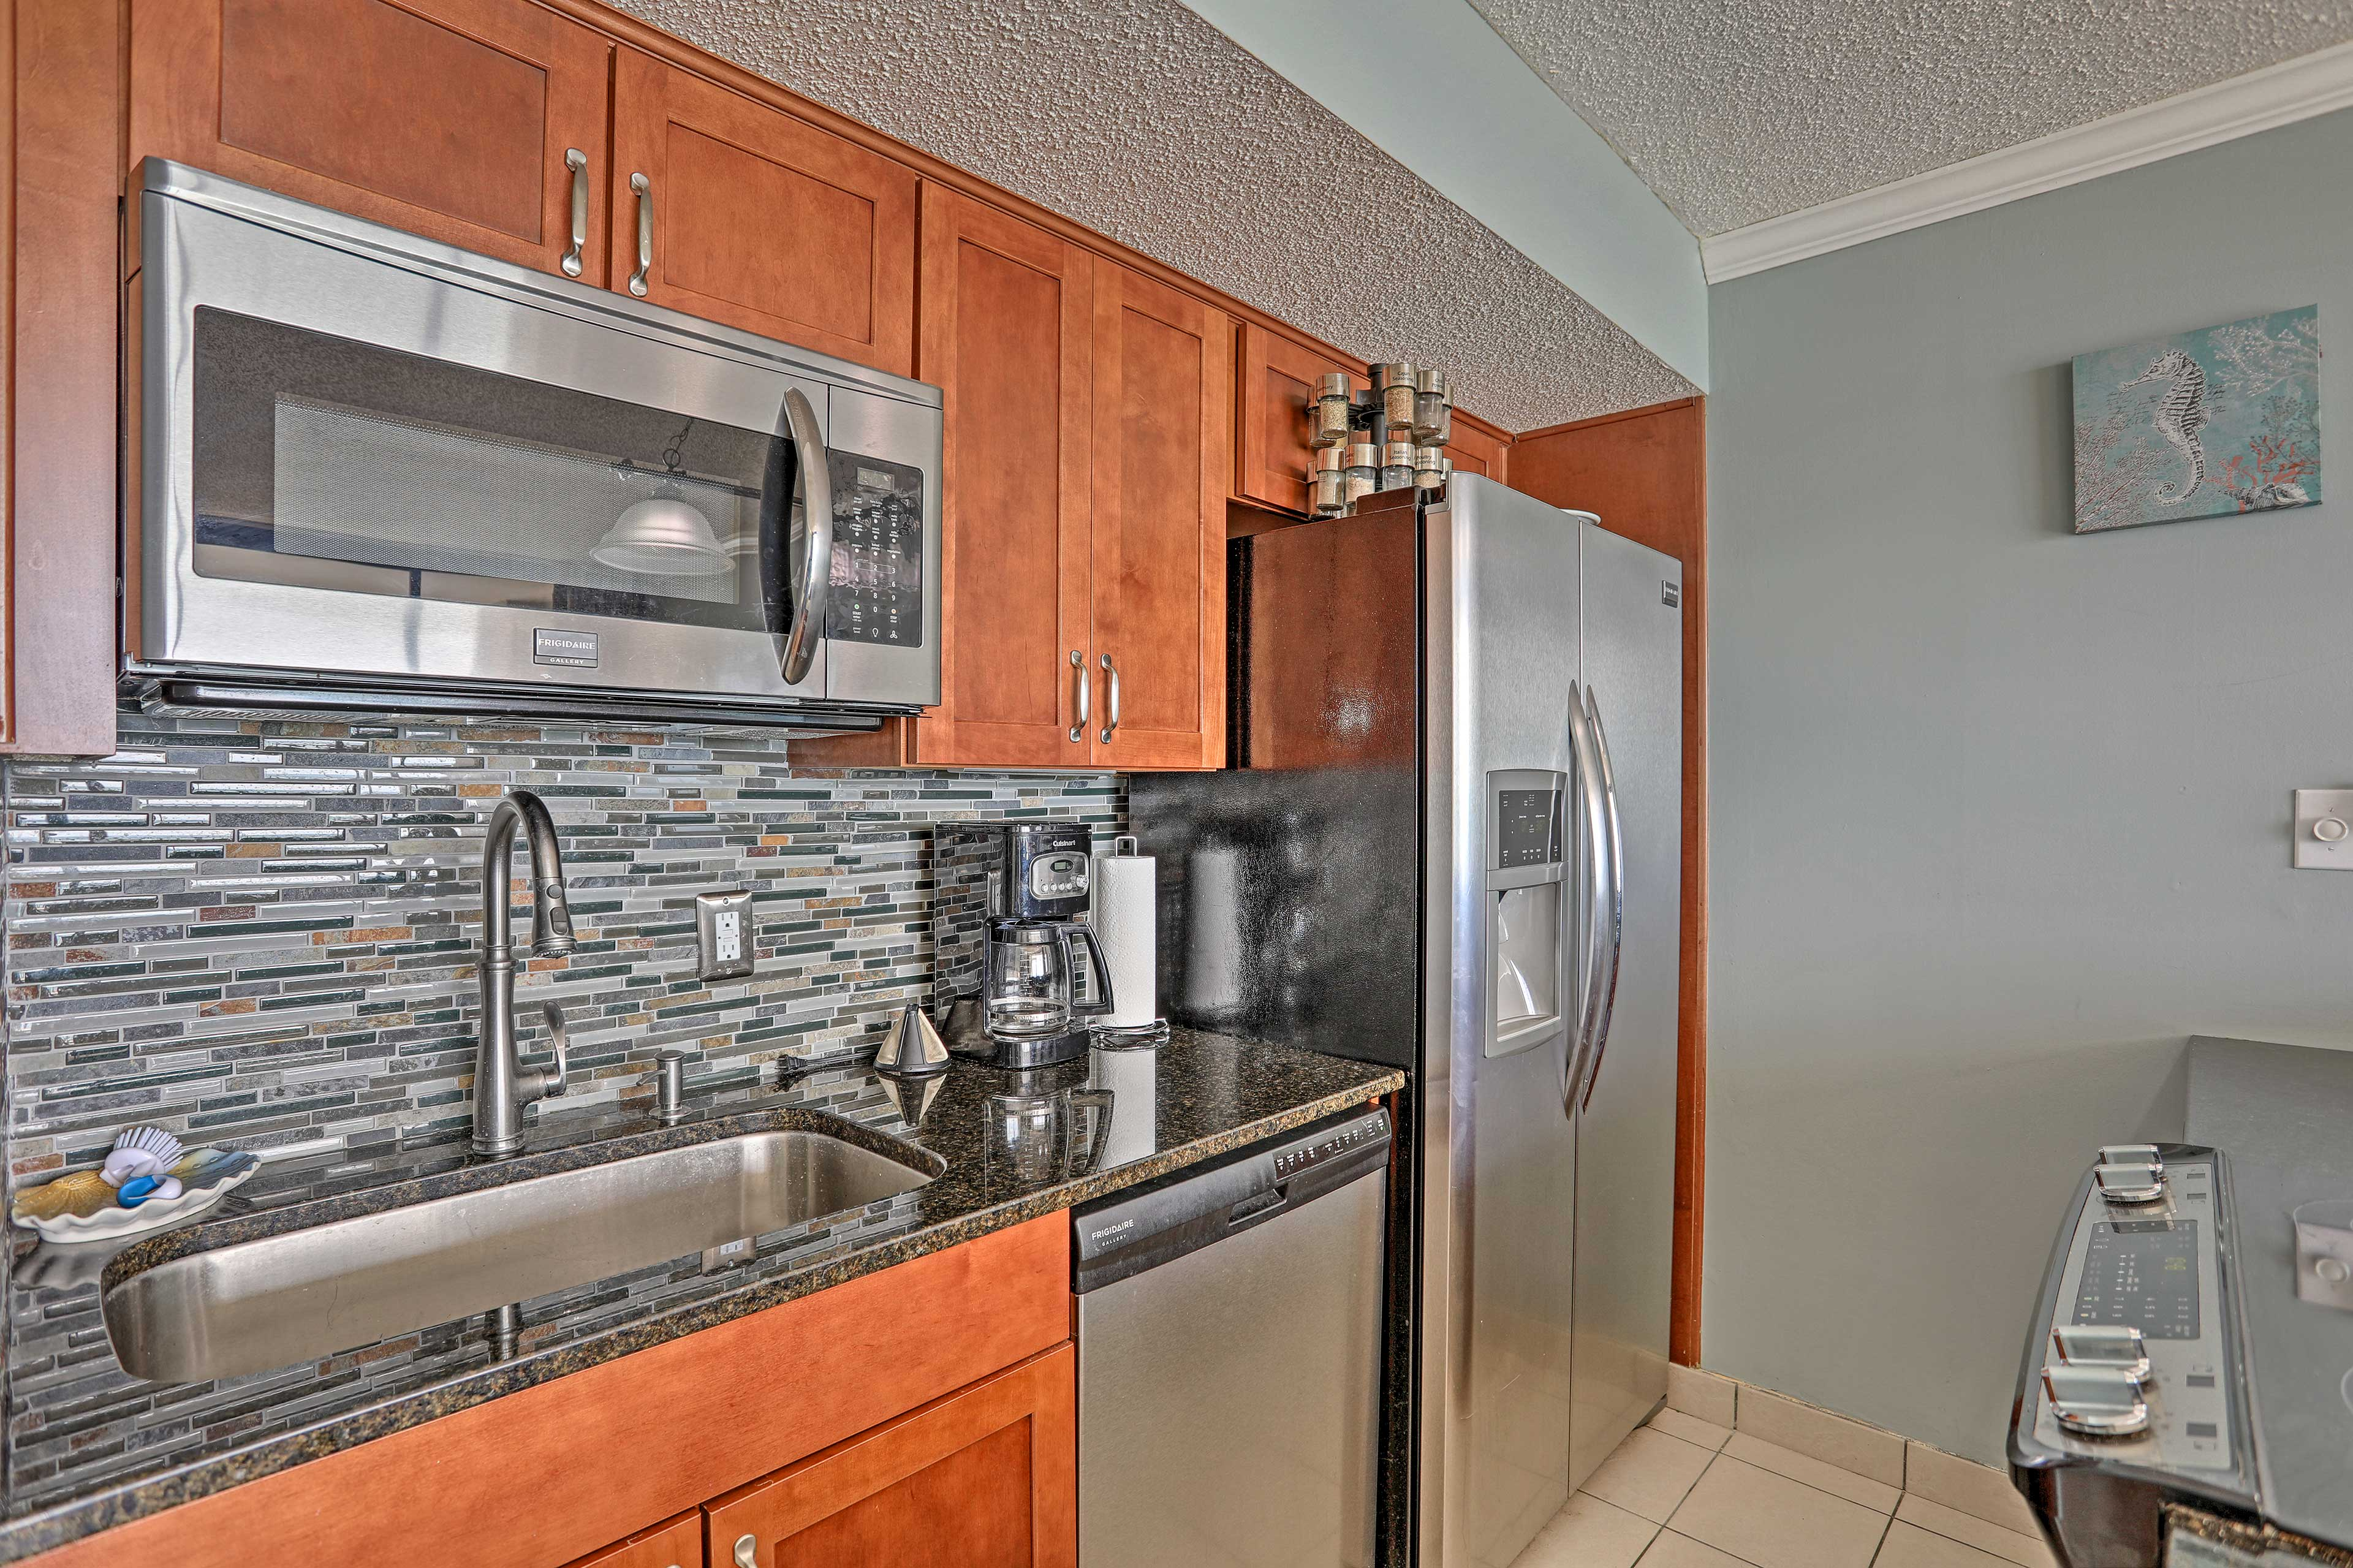 Cook up a meal in the fully equipped kitchen.